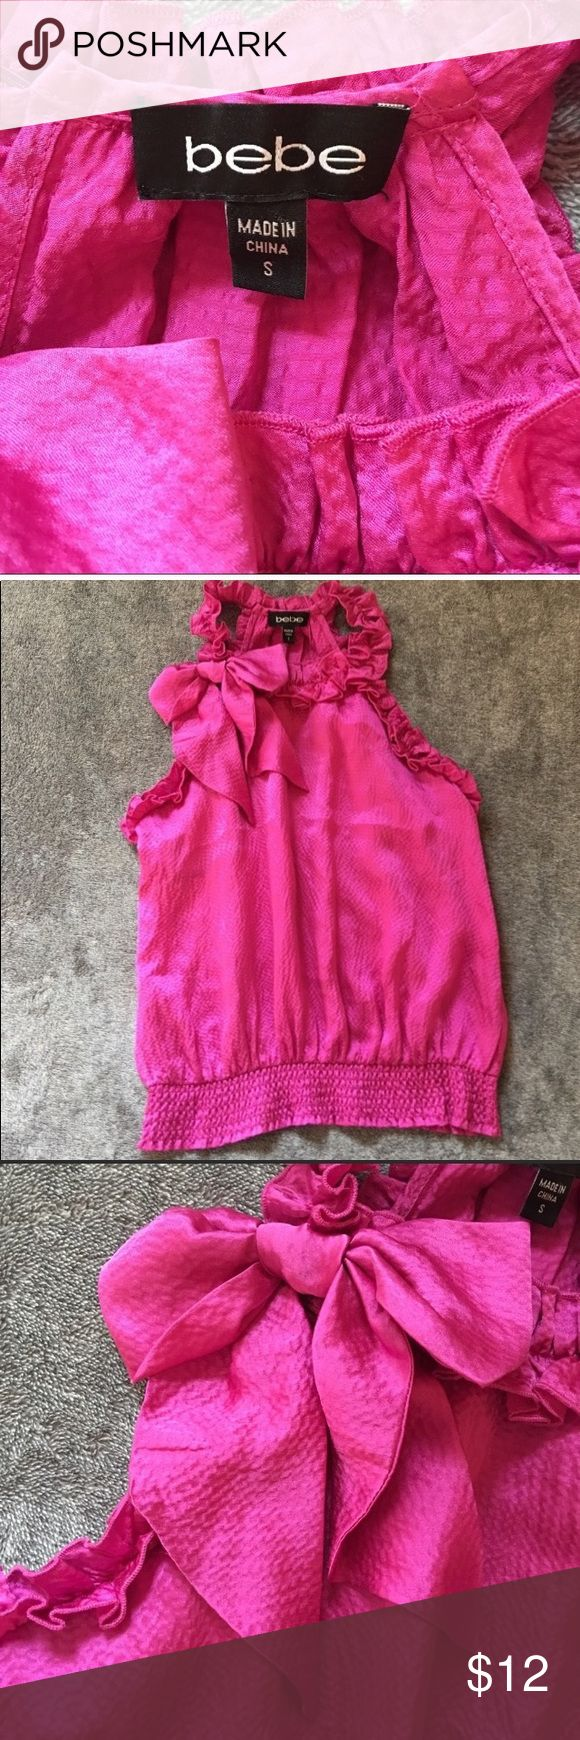 Bebe Bow Tank Top Beautiful Bebe top with bow that can can be left on or taken off. Purchased from another Posher for my daughter and she already had a top similar. Tops Tank Tops